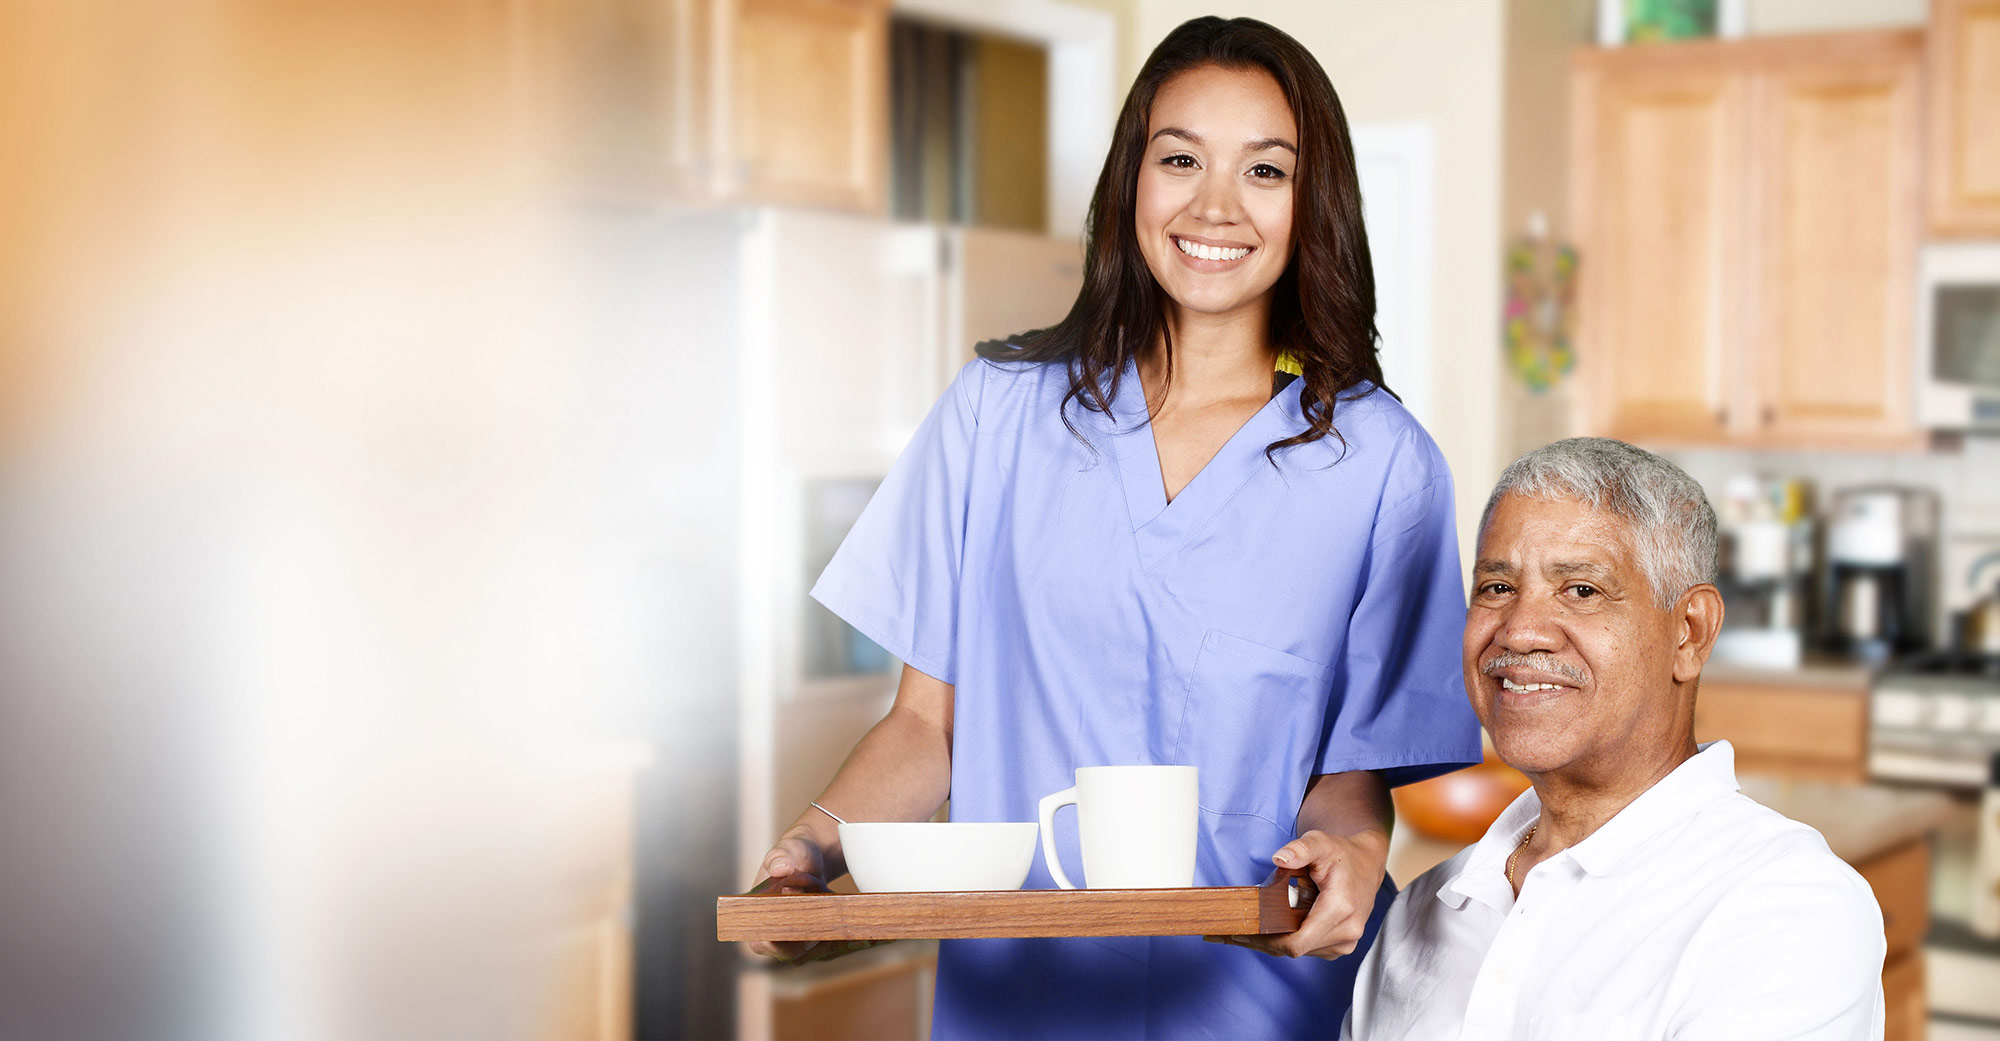 Three Reasons Why Hiring Millennials is Good for Your Home Care Business